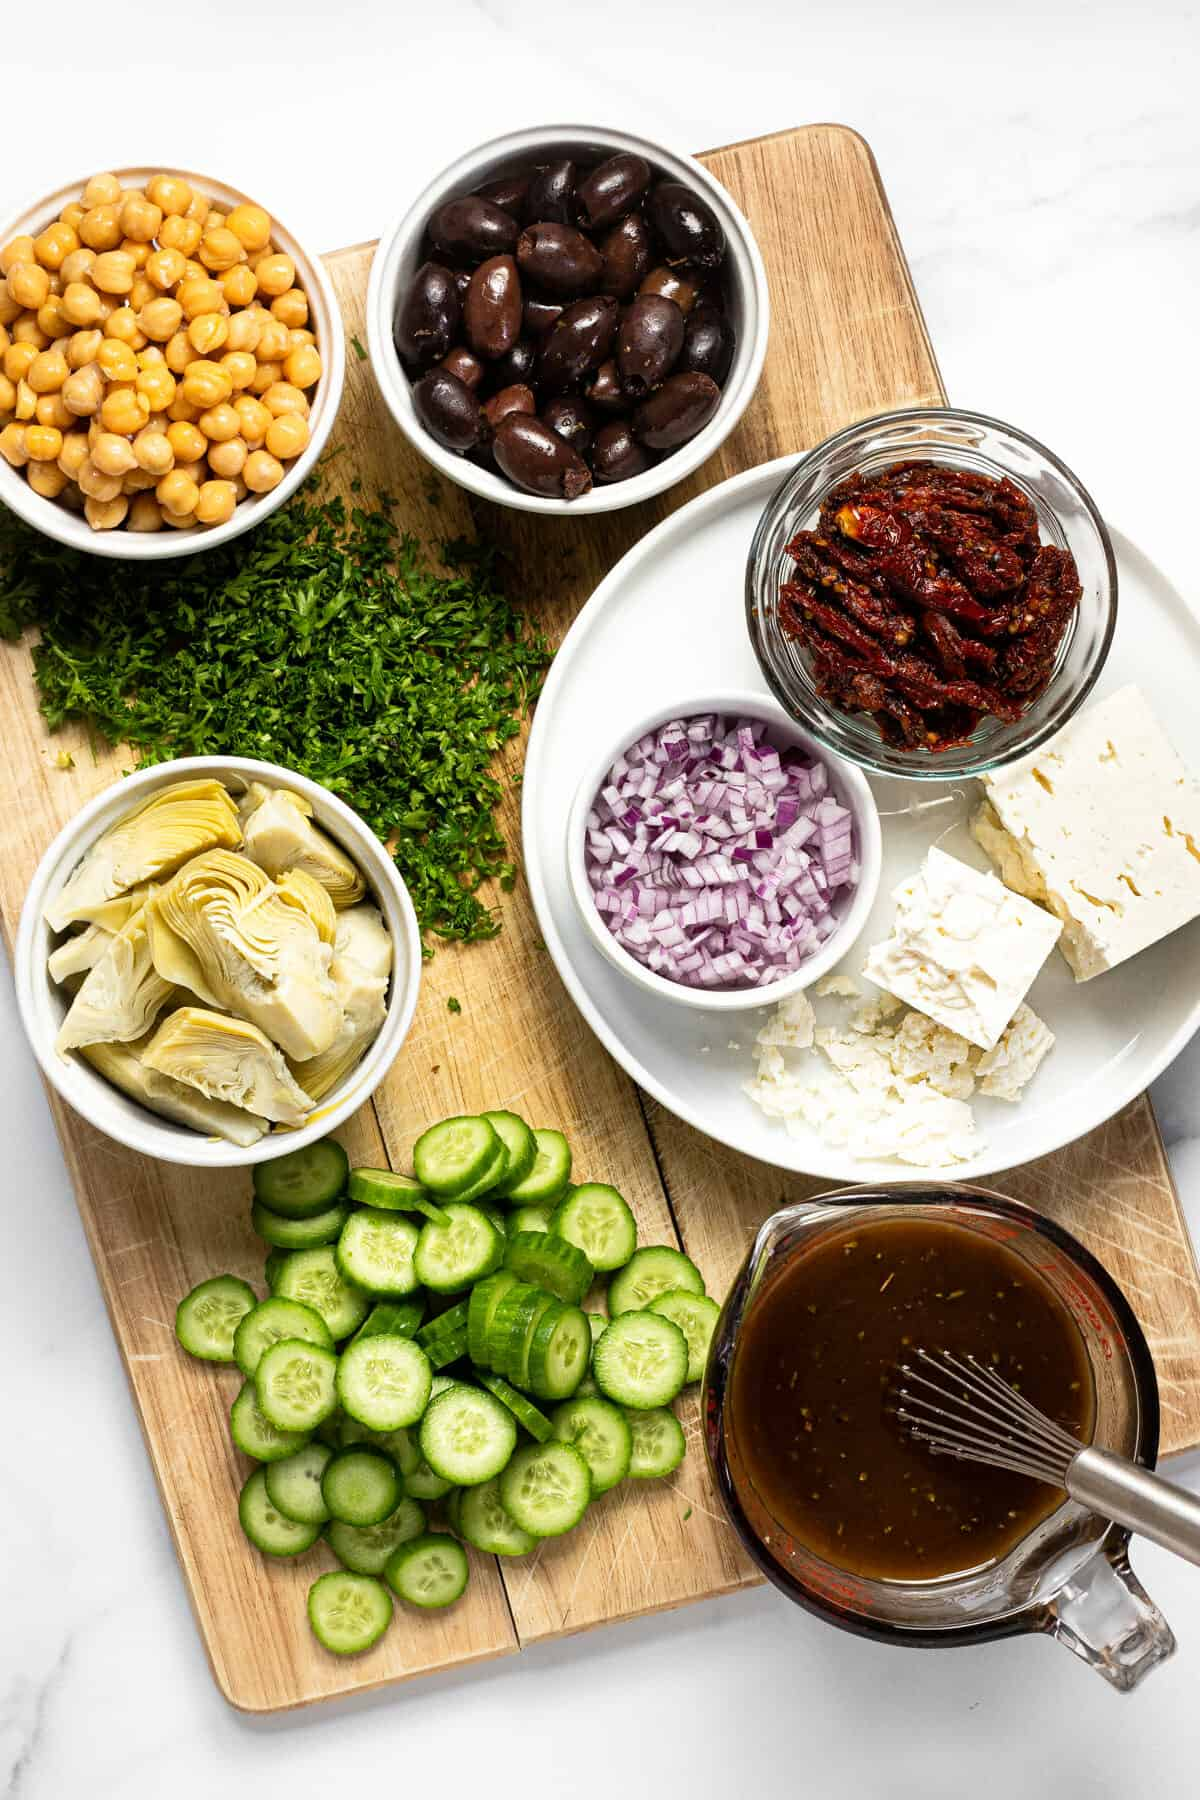 Wooden cutting board with ingredients to make Greek orzo salad on it